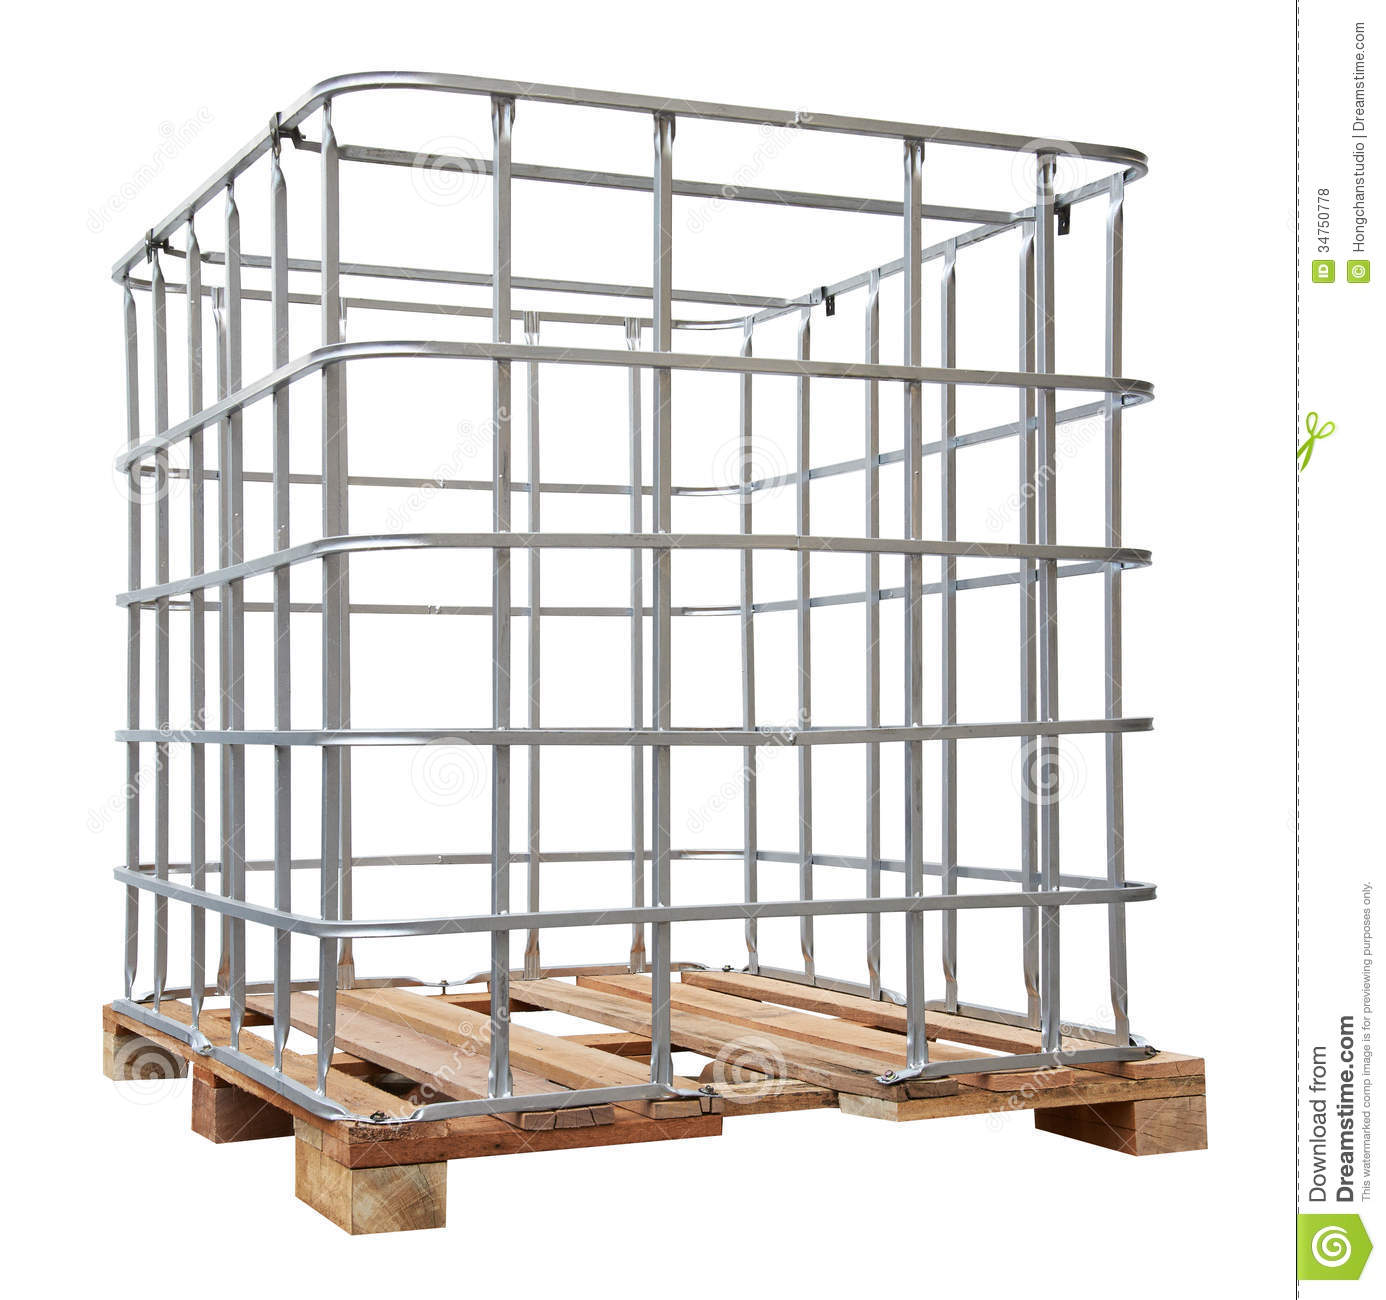 Water Tank Iron Frame stock photo. Image of construction - 34750778